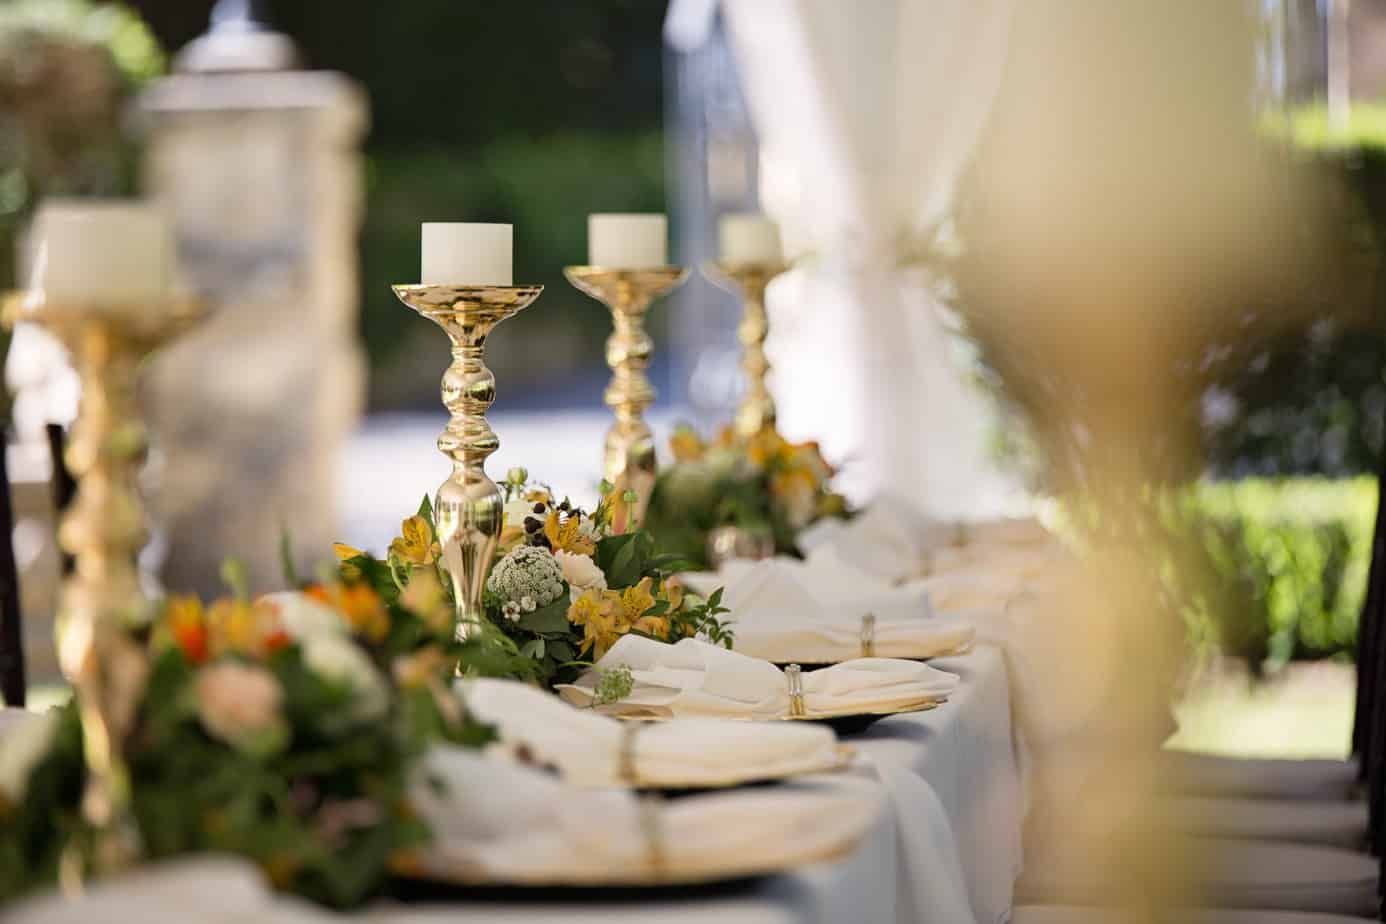 No More Fuss Over Wedding Centerpieces: Here Is How You Can Customize The Best Decor In Minimal Budget (2021)